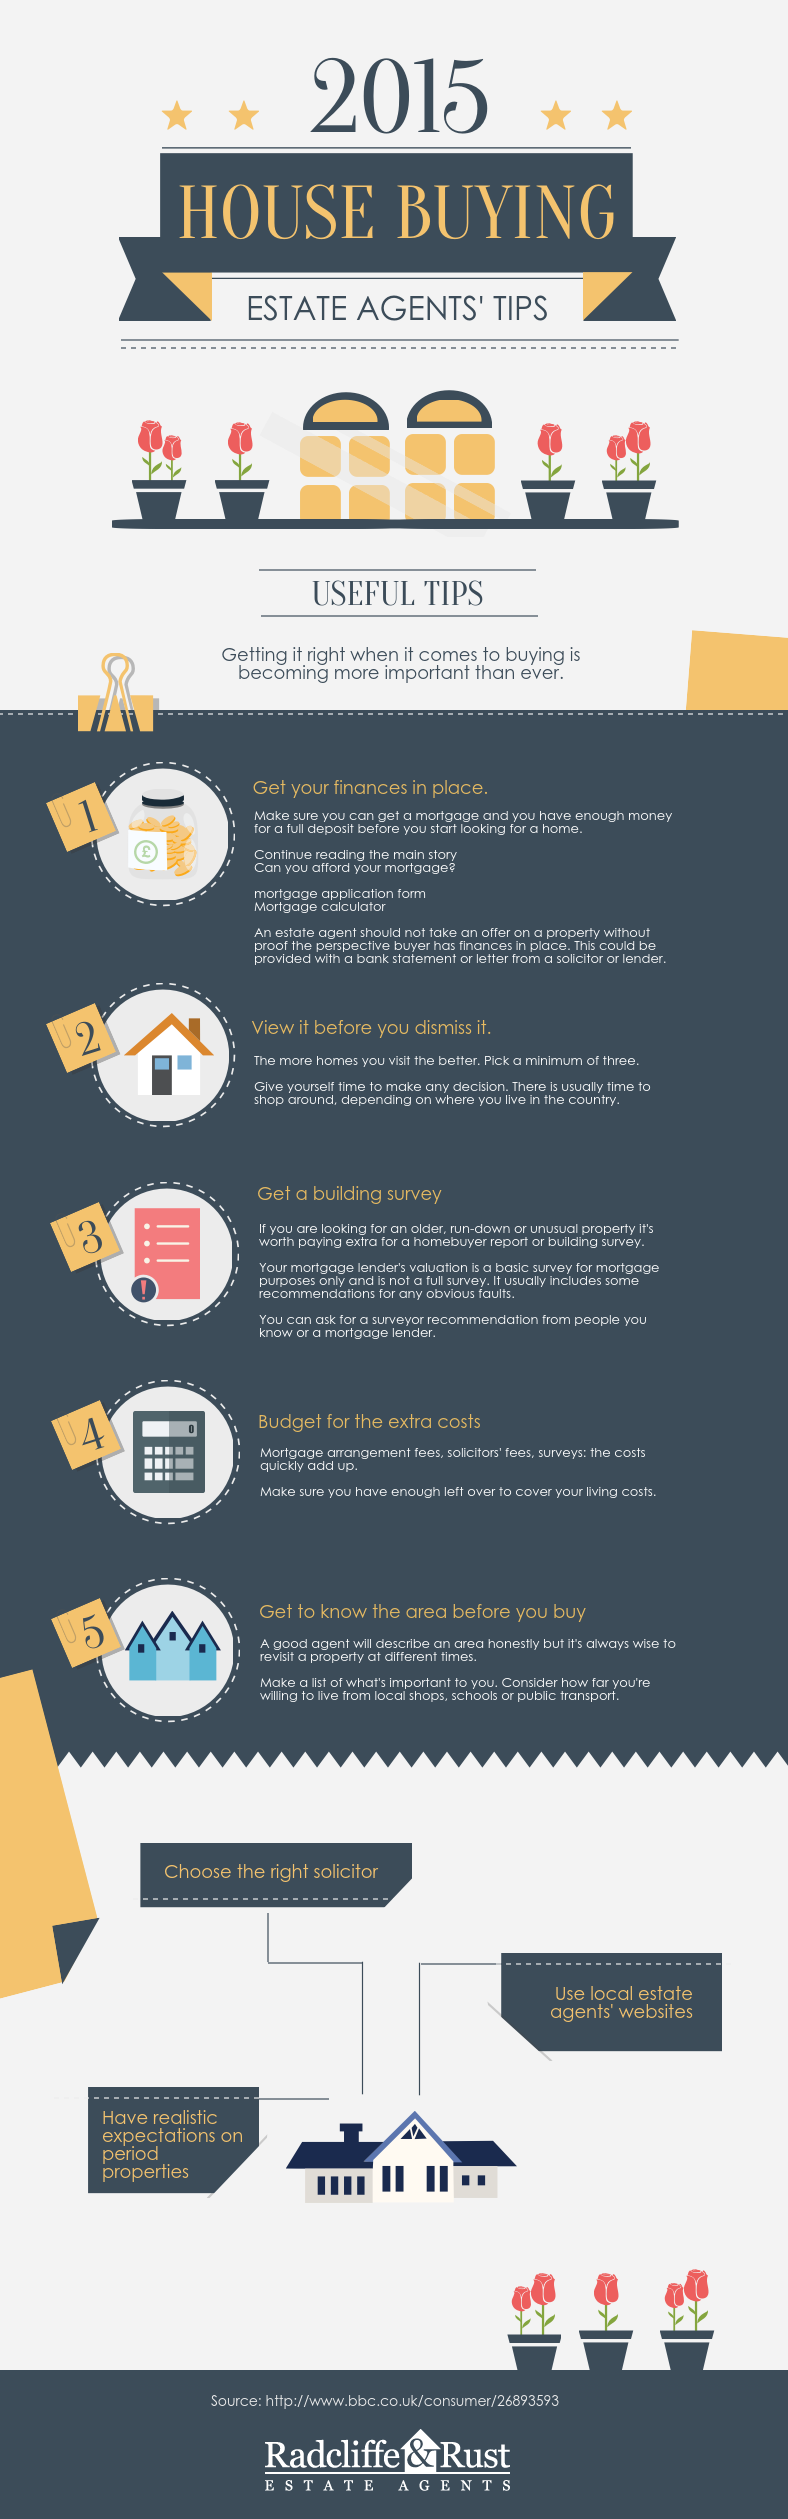 House Buying Tips 2015 Visual